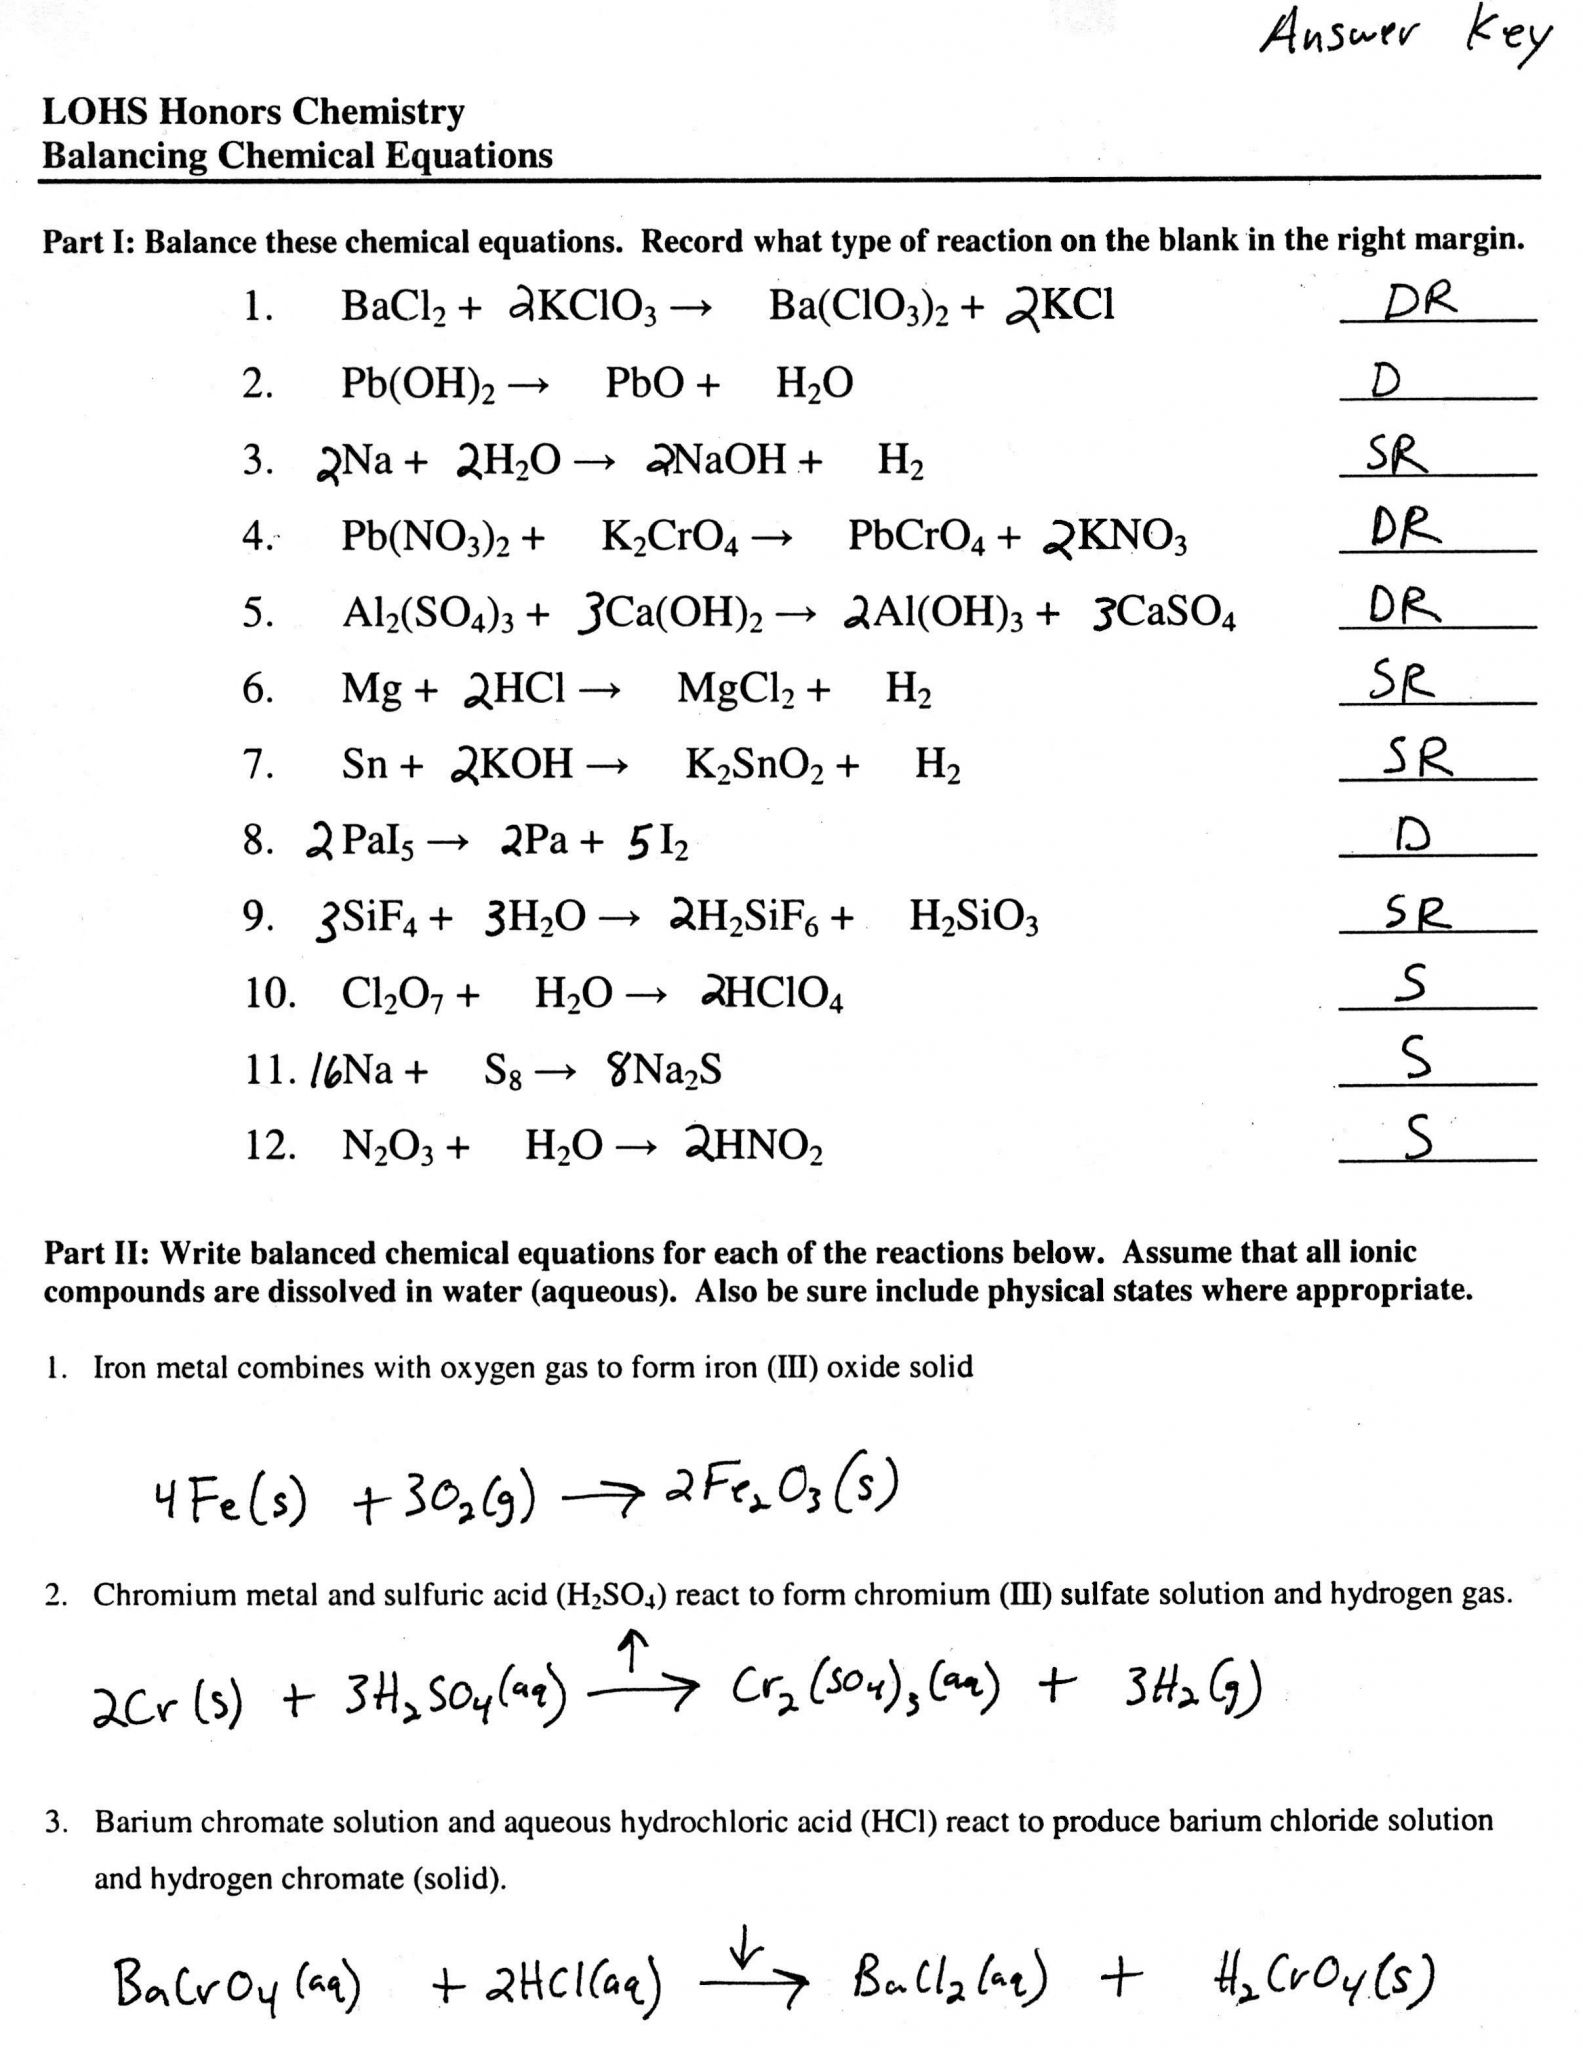 Balancing Chemical Equations Worksheet Grade 10